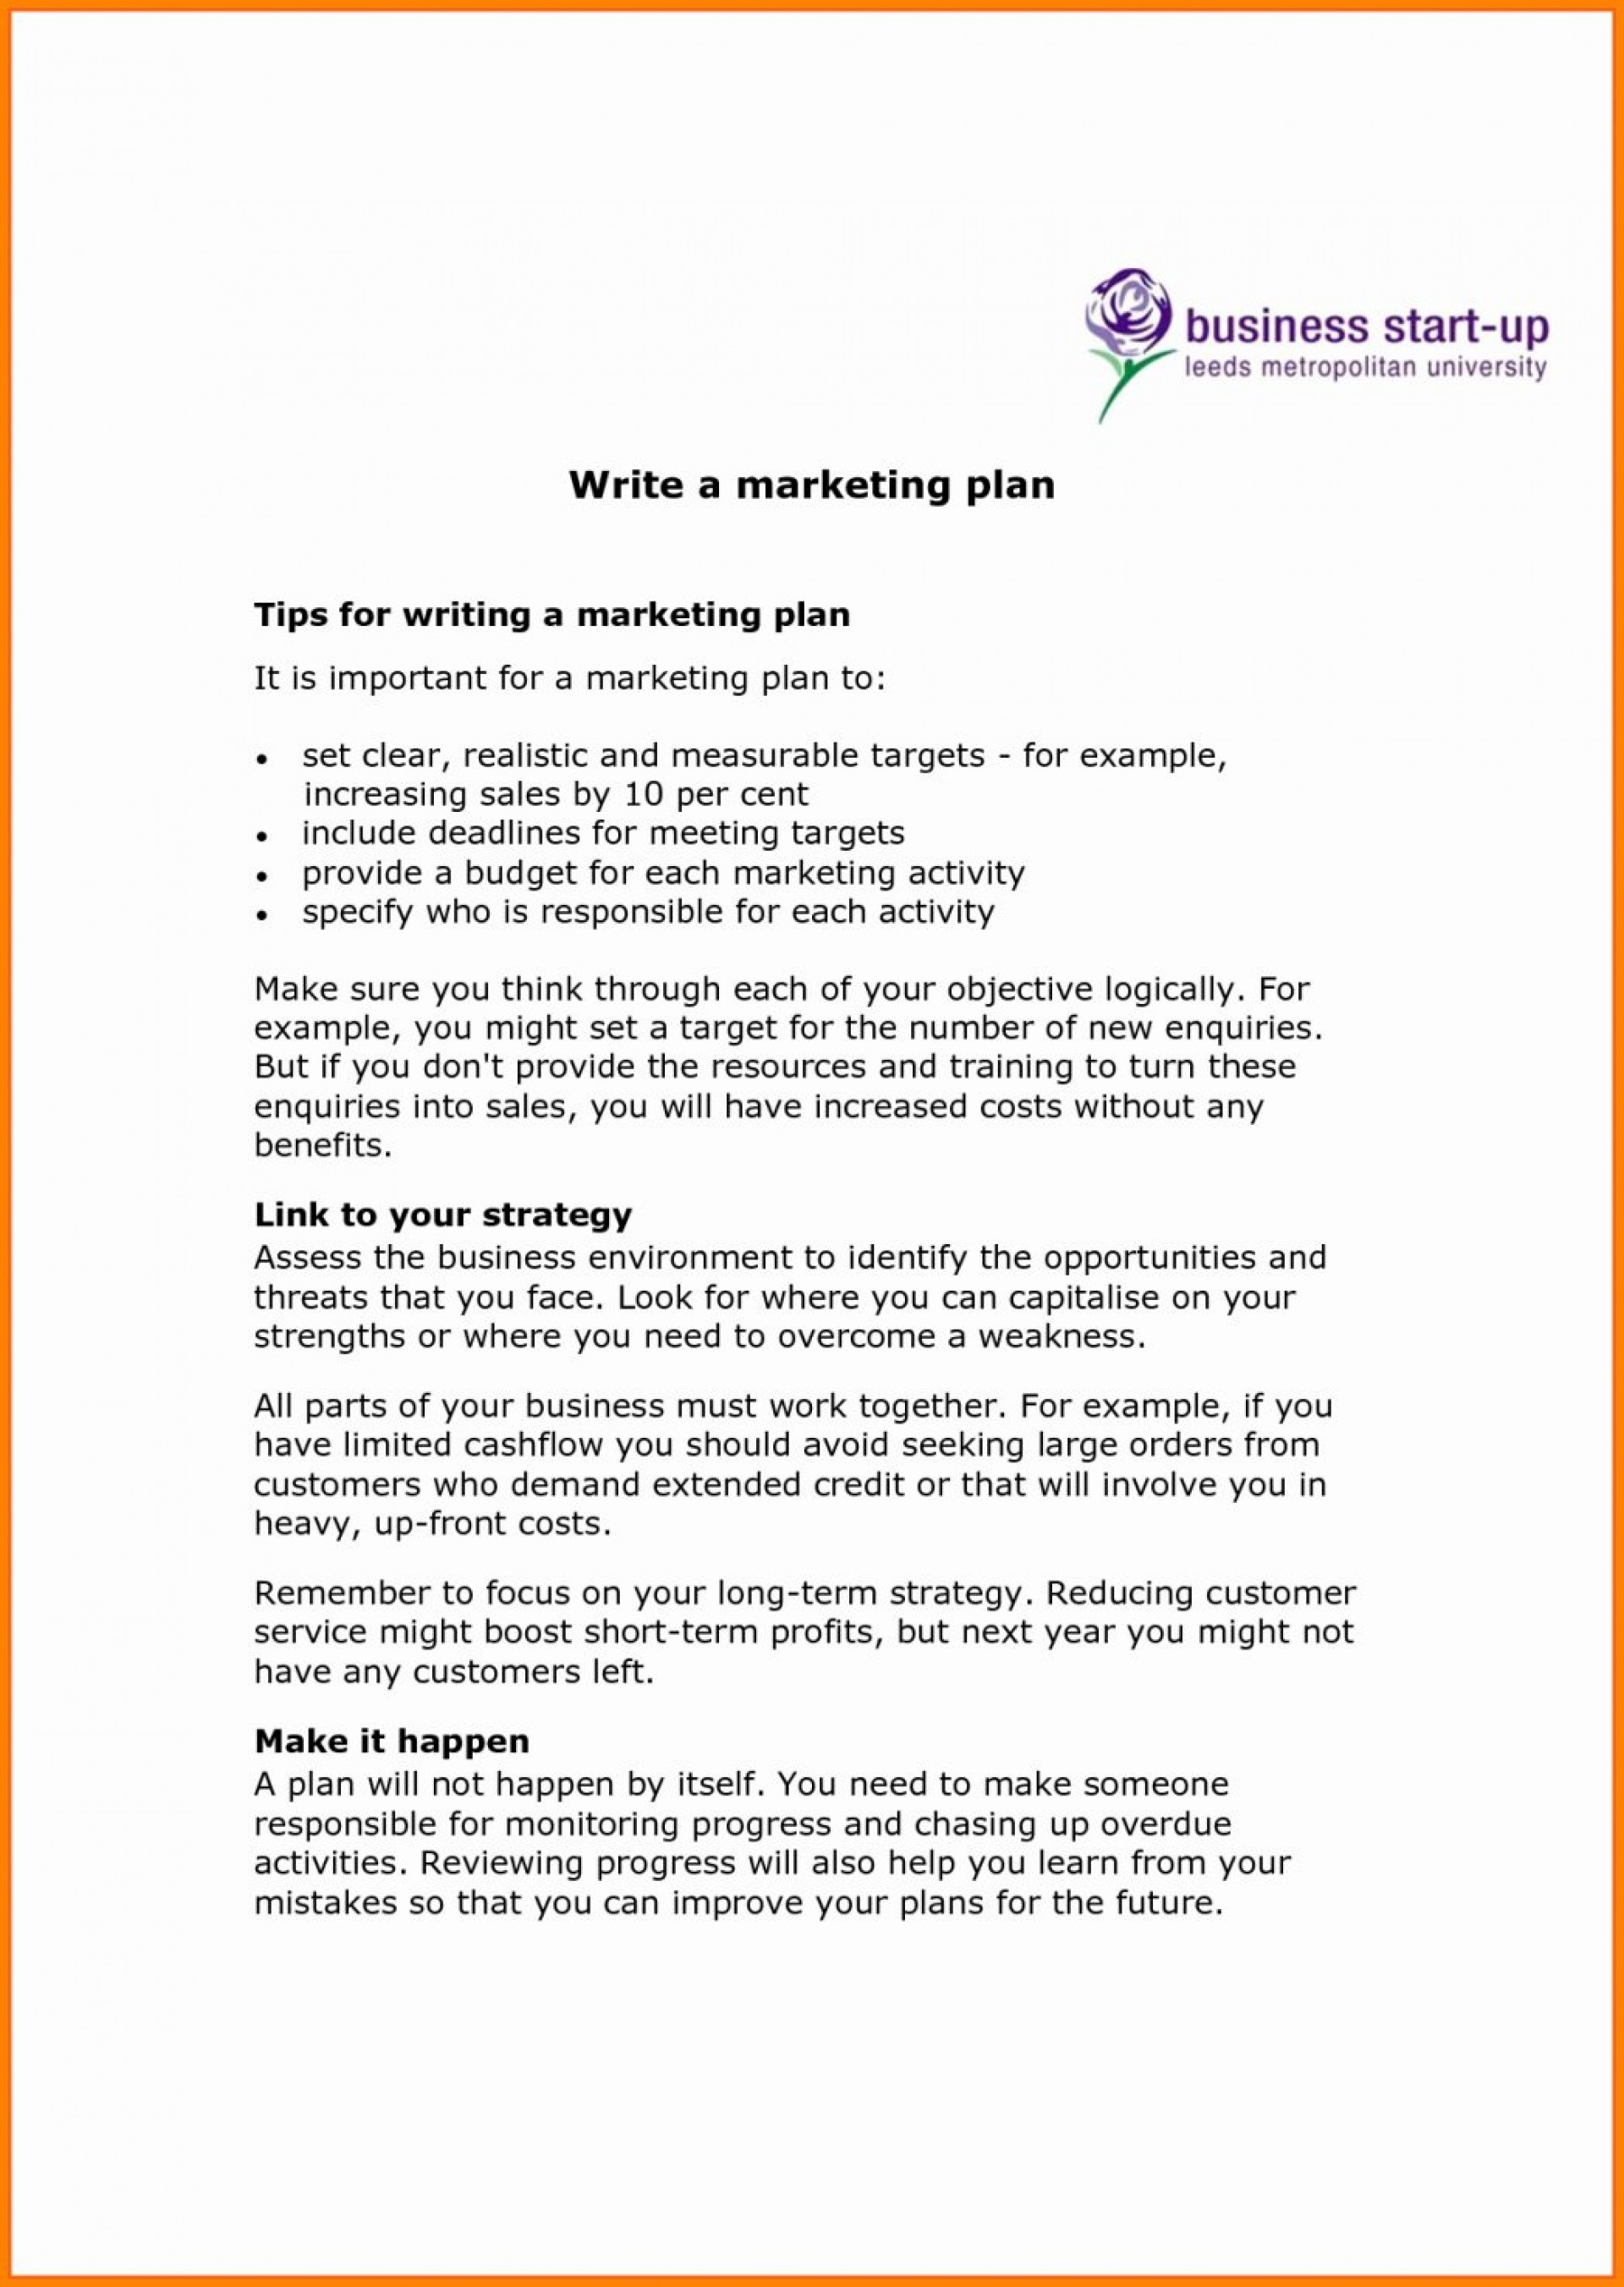 022 Research Paper Parts Of And Its Definition Pdf Marketing Plan Example Business Genxeg Quizlet Sample Proposal Bestf Real Estate Bussines Small Company Sba Executive Staggering A 1920